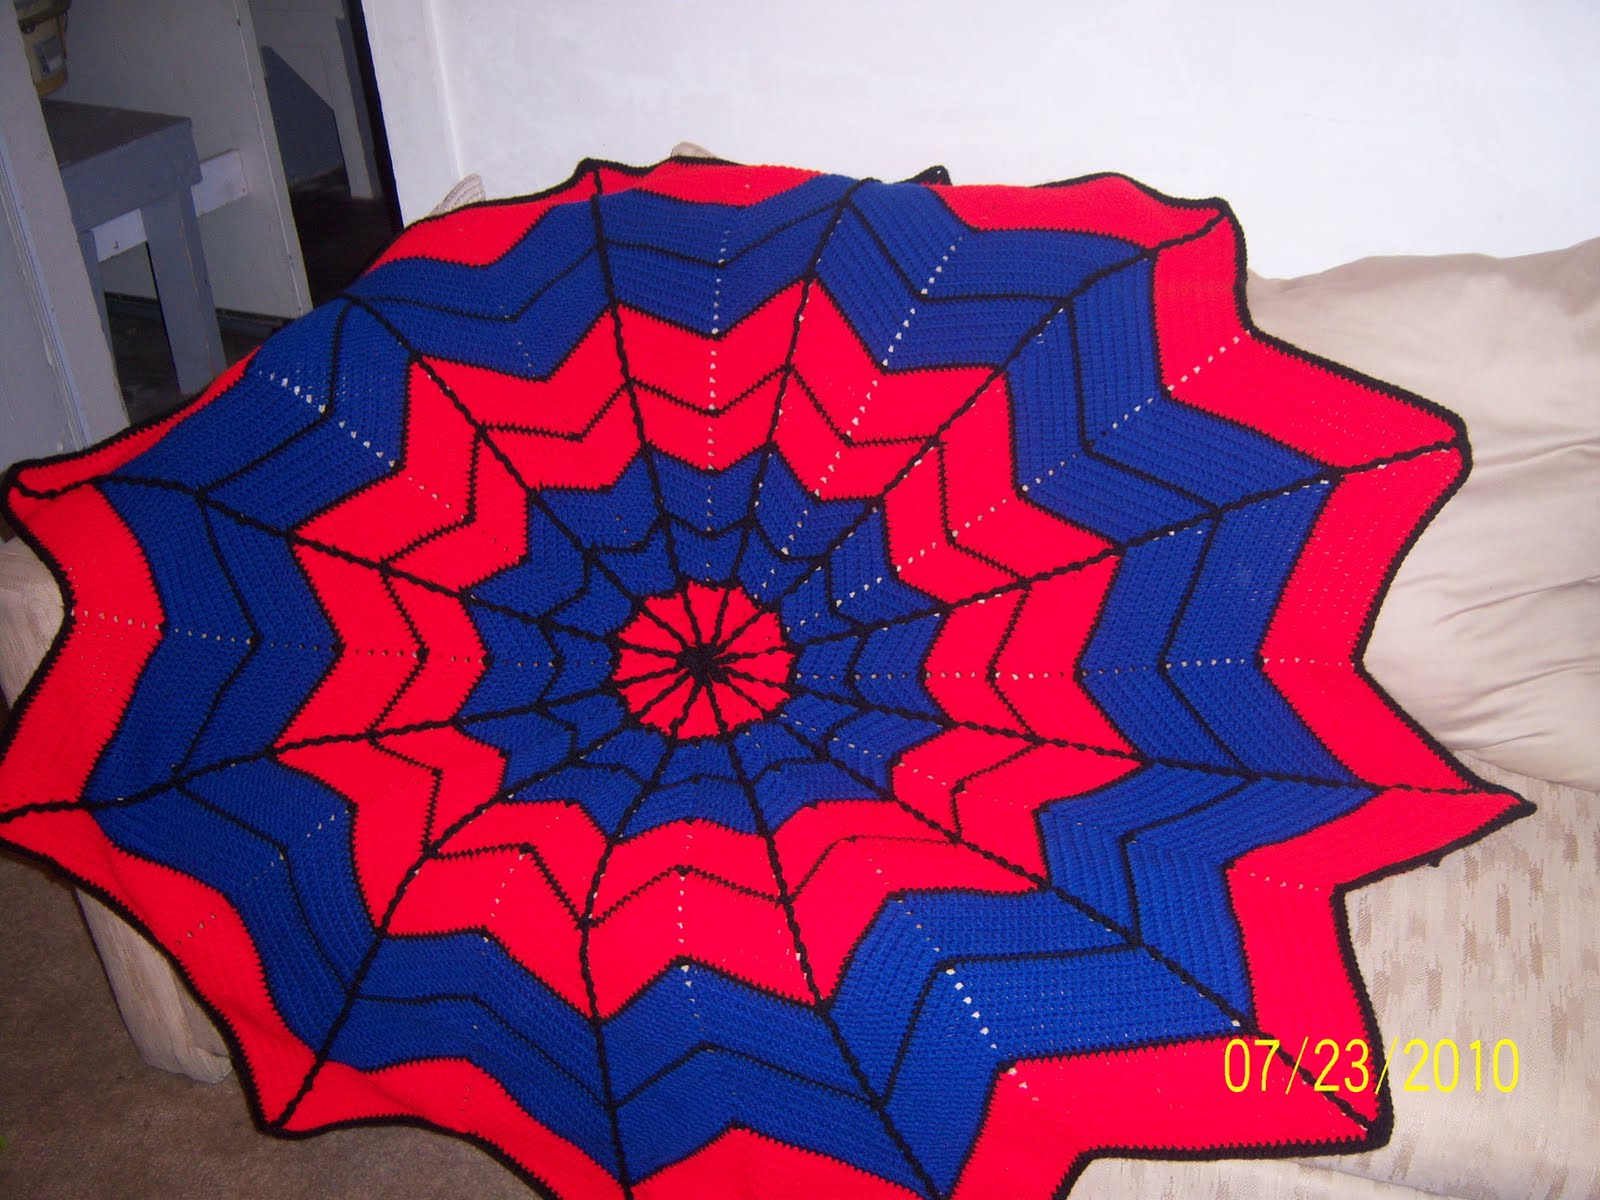 Crochet Pattern For Spiderman Blanket : Sharons Eclectic Retreat: Mondays Link to Free Crochet ...